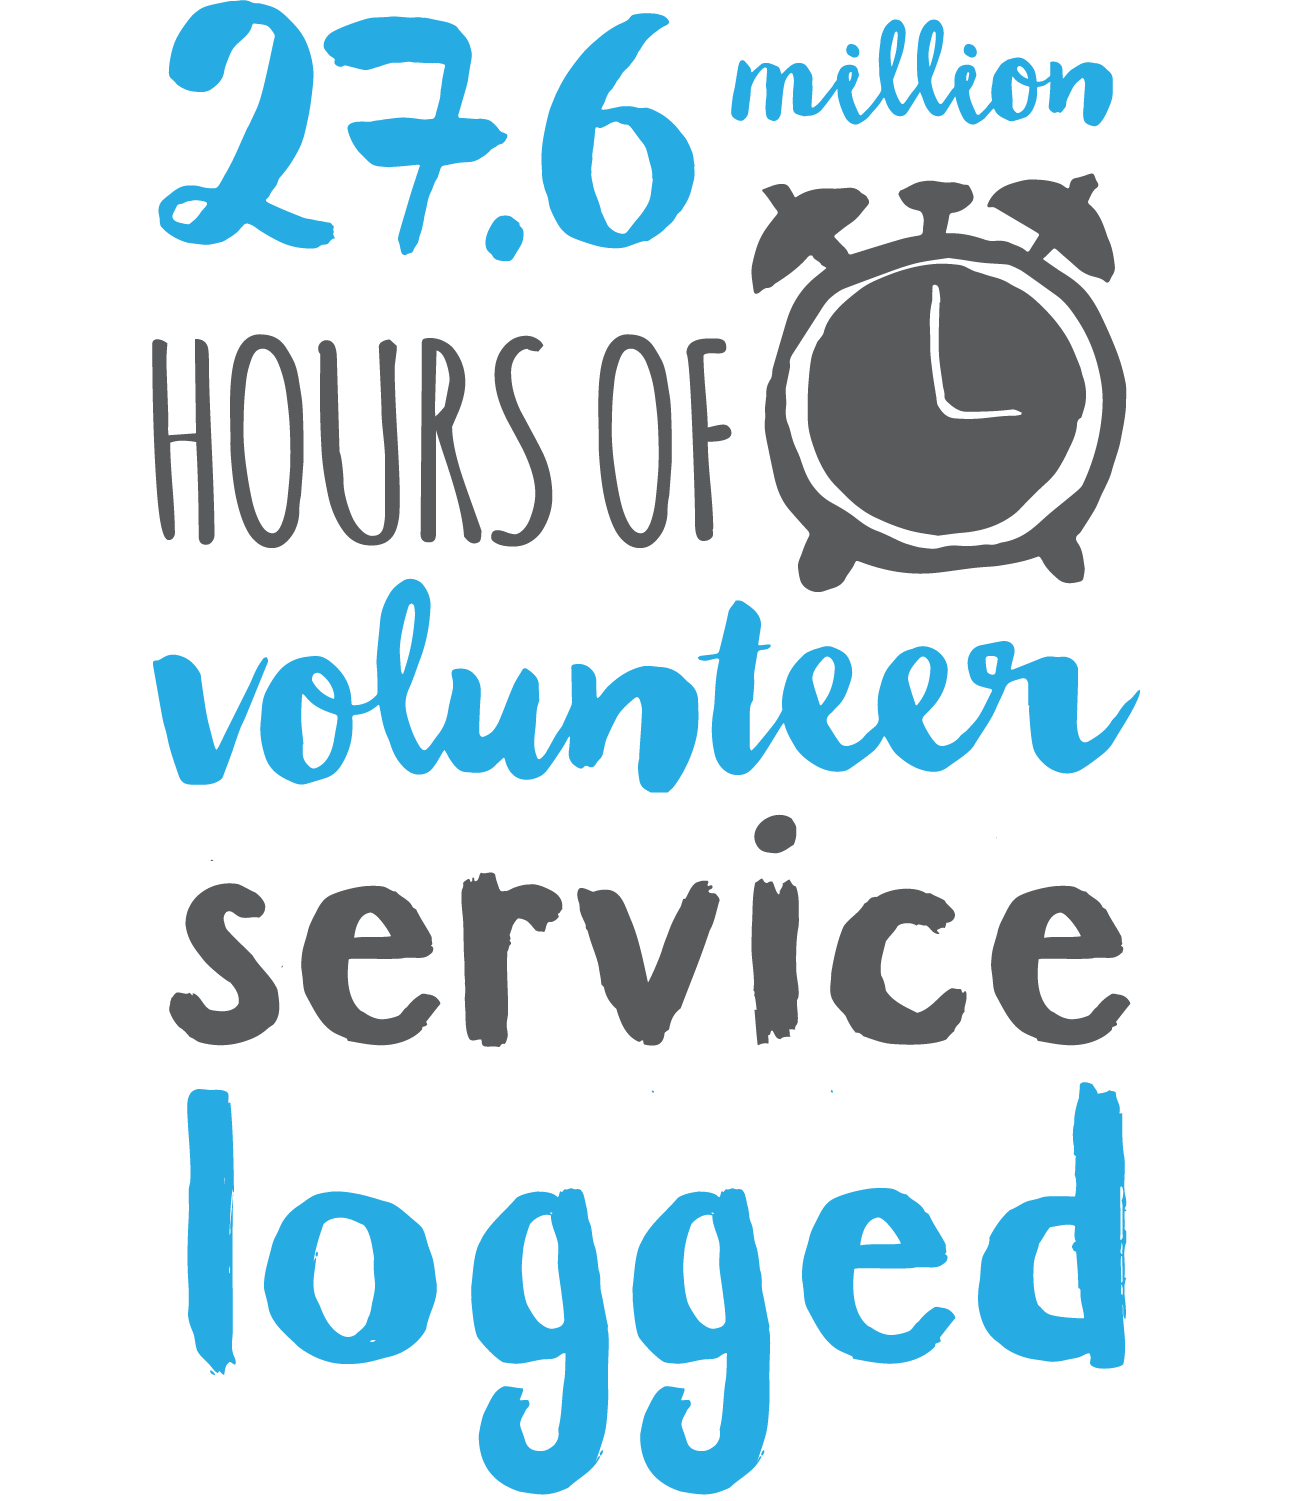 27.6 million hours of volunteer service logged